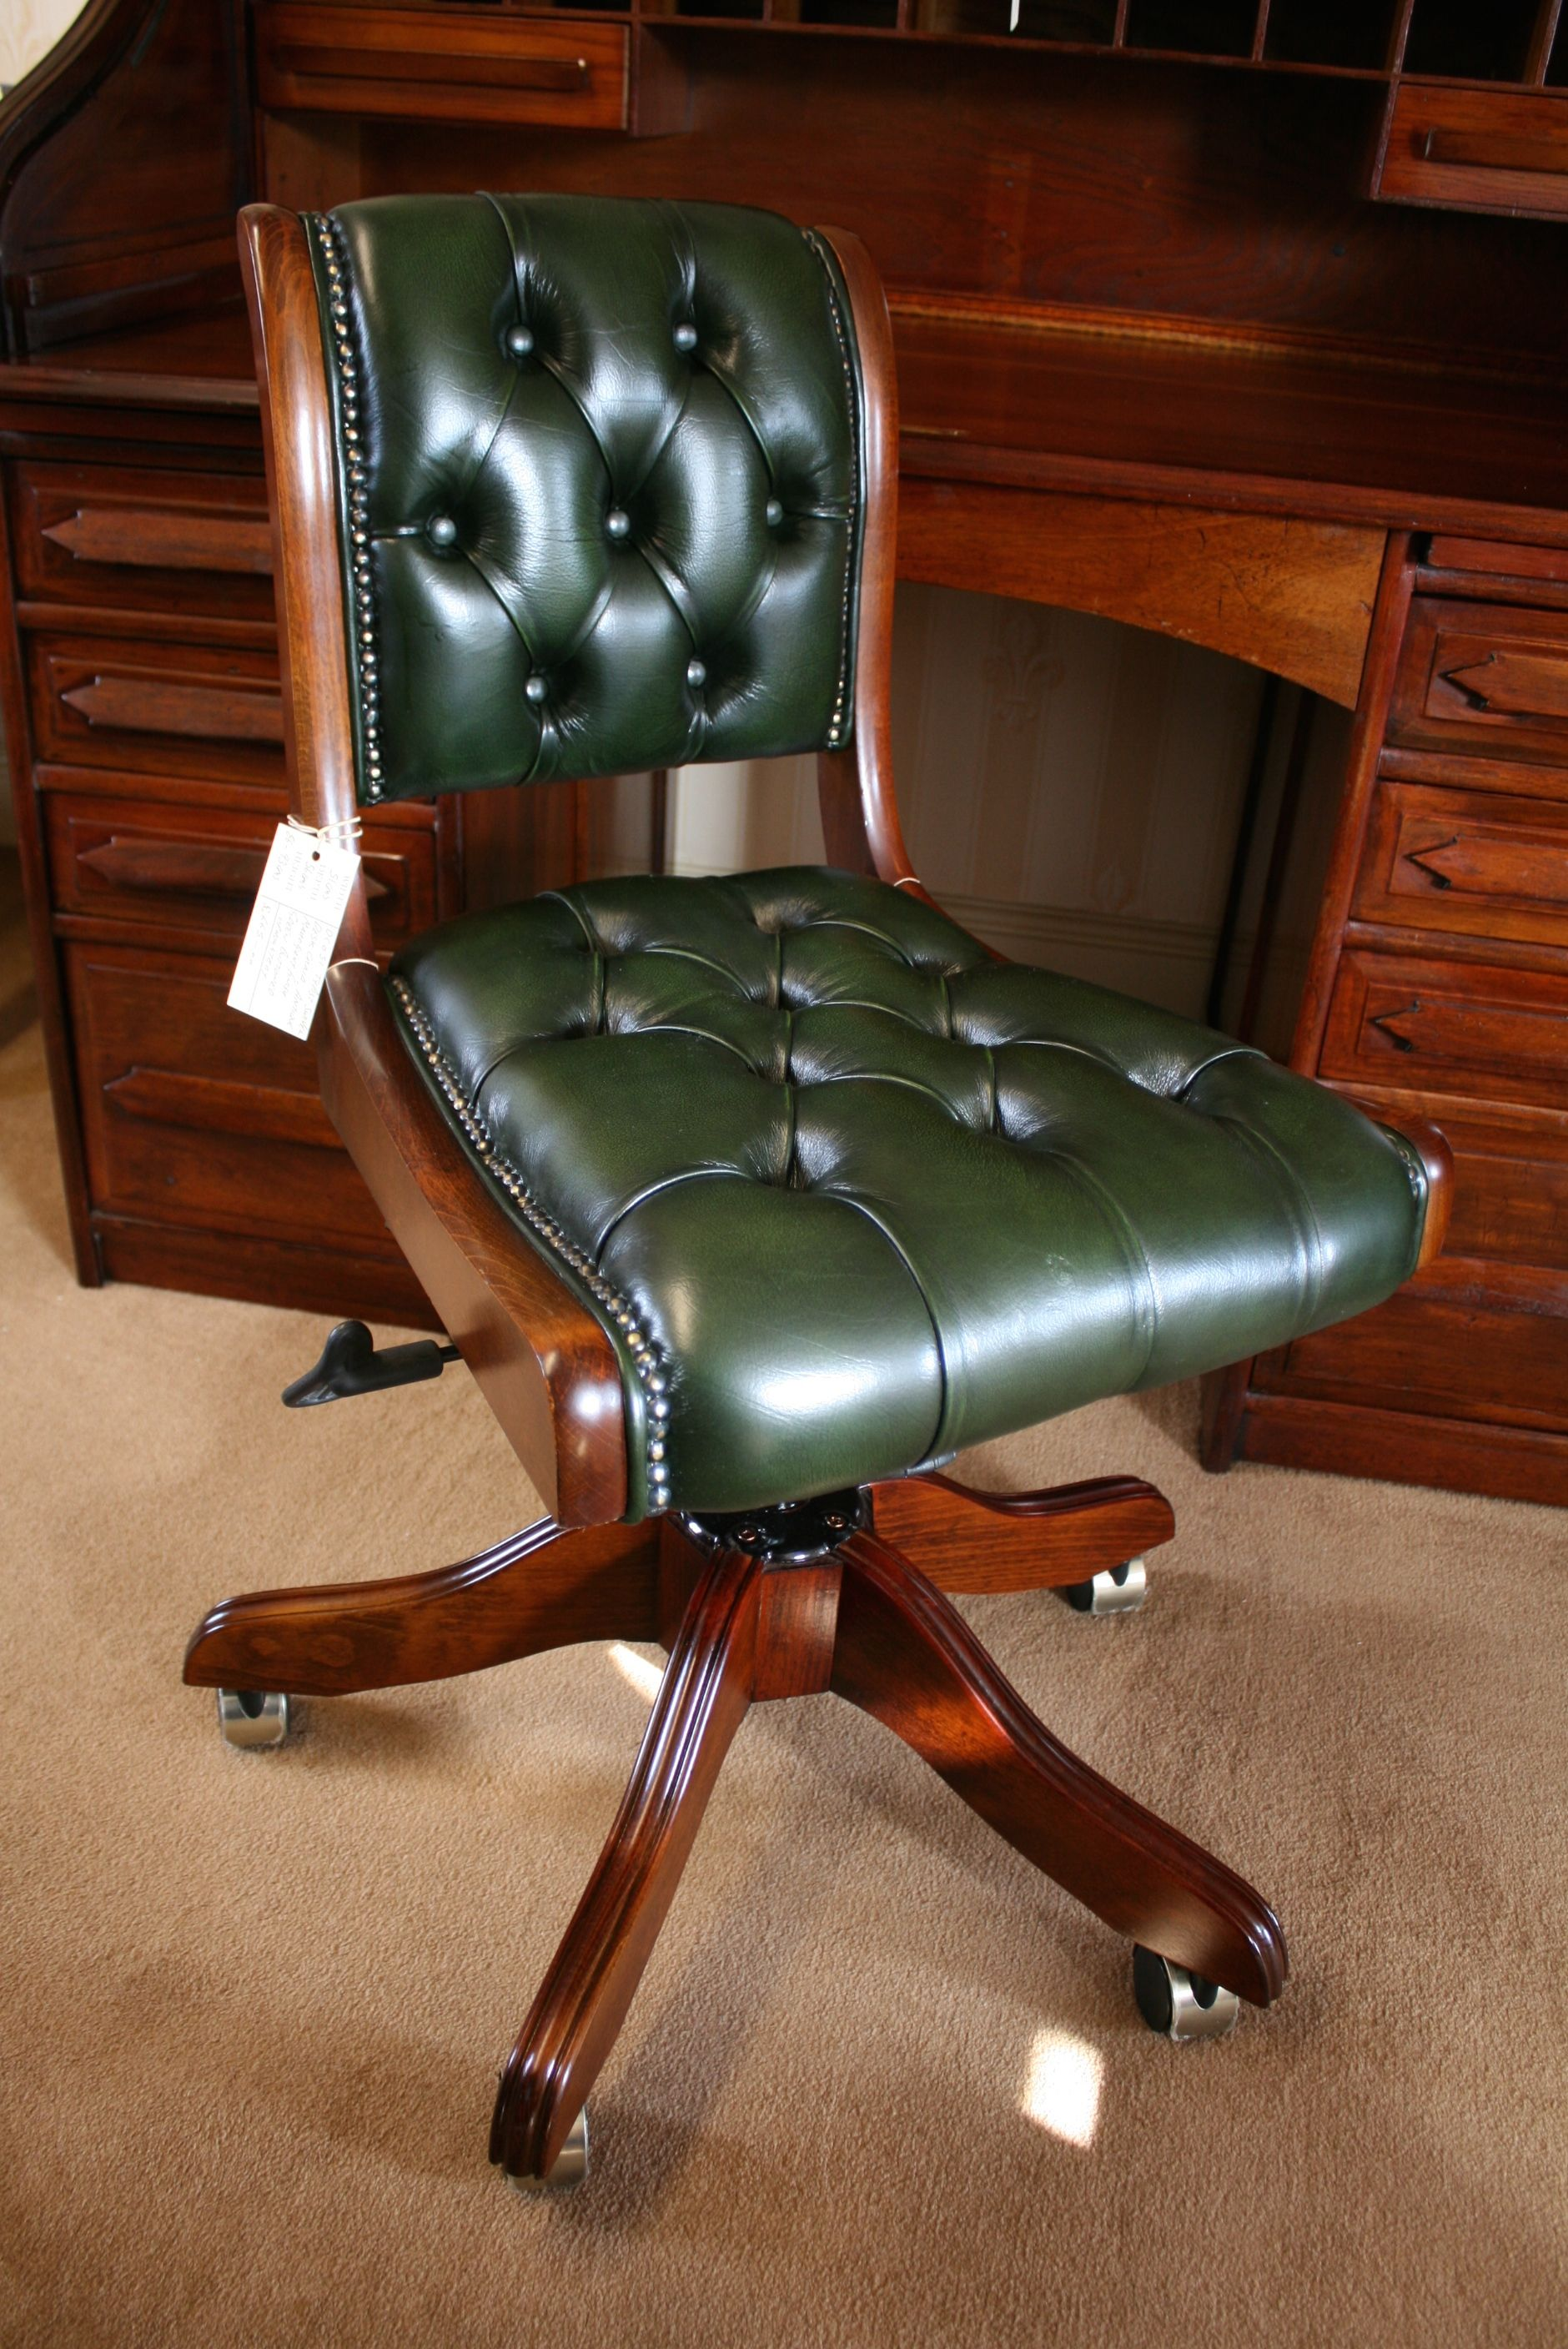 null allen shop en ethan brass chair furniture home us harvard front office chairs di images desk